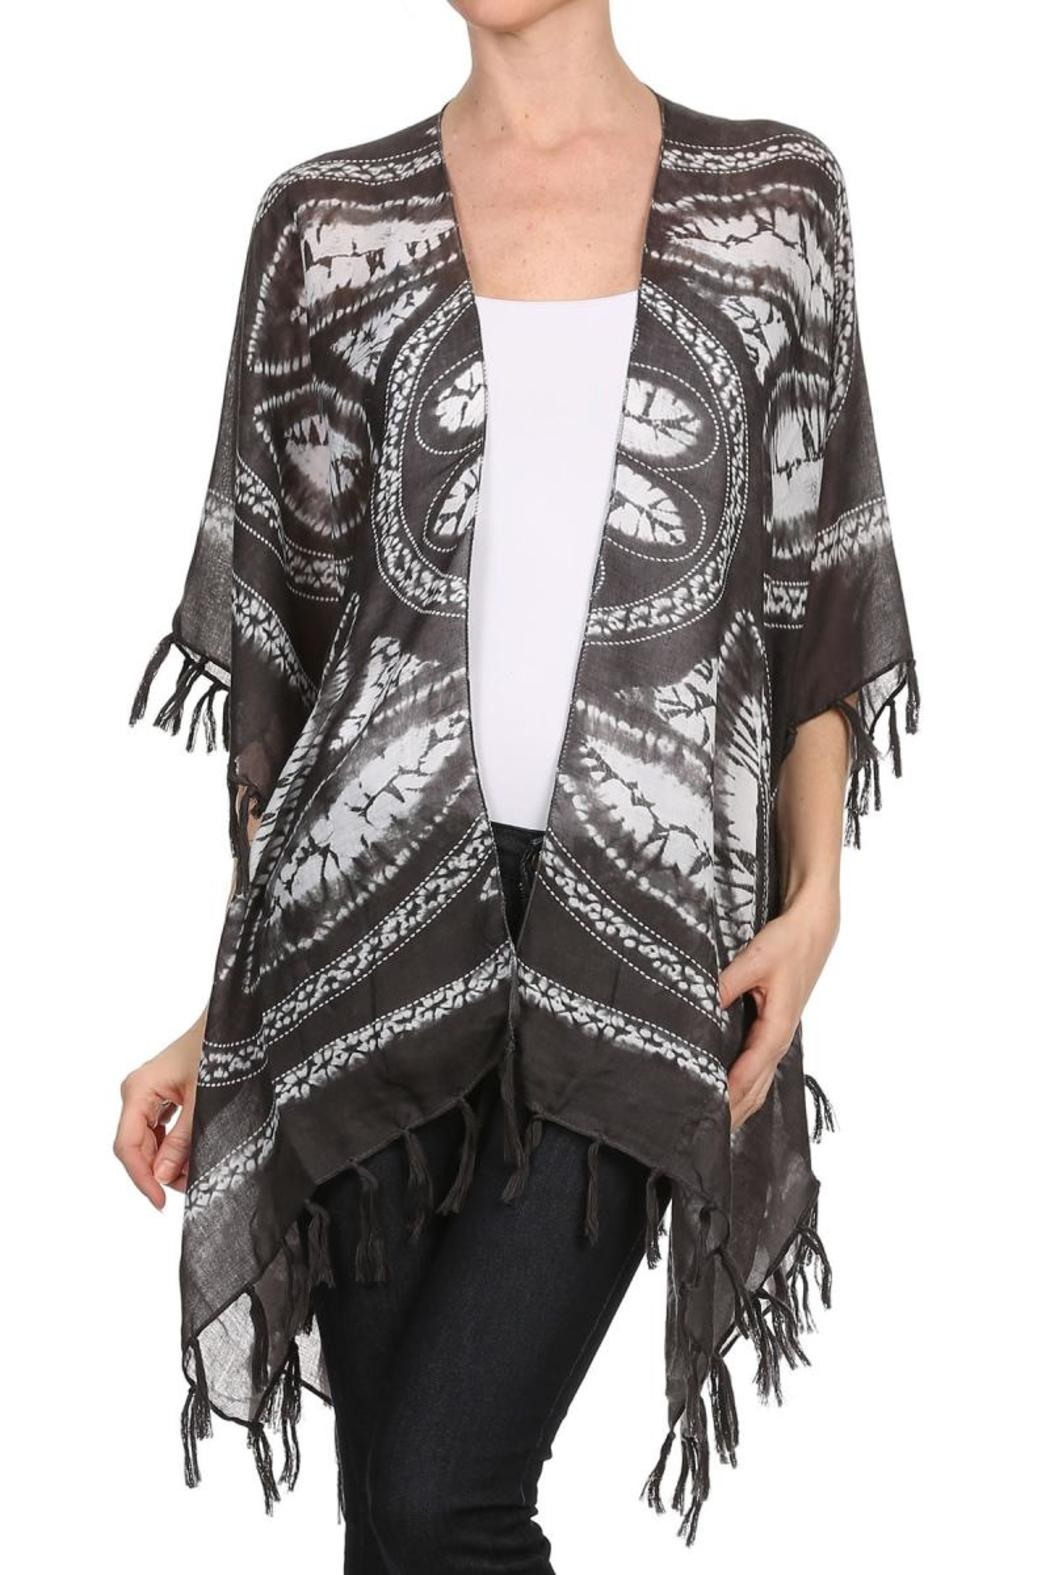 Breezy-Jo Kimono Style Cardigan from Indiana by Uptown Retro Girl ...